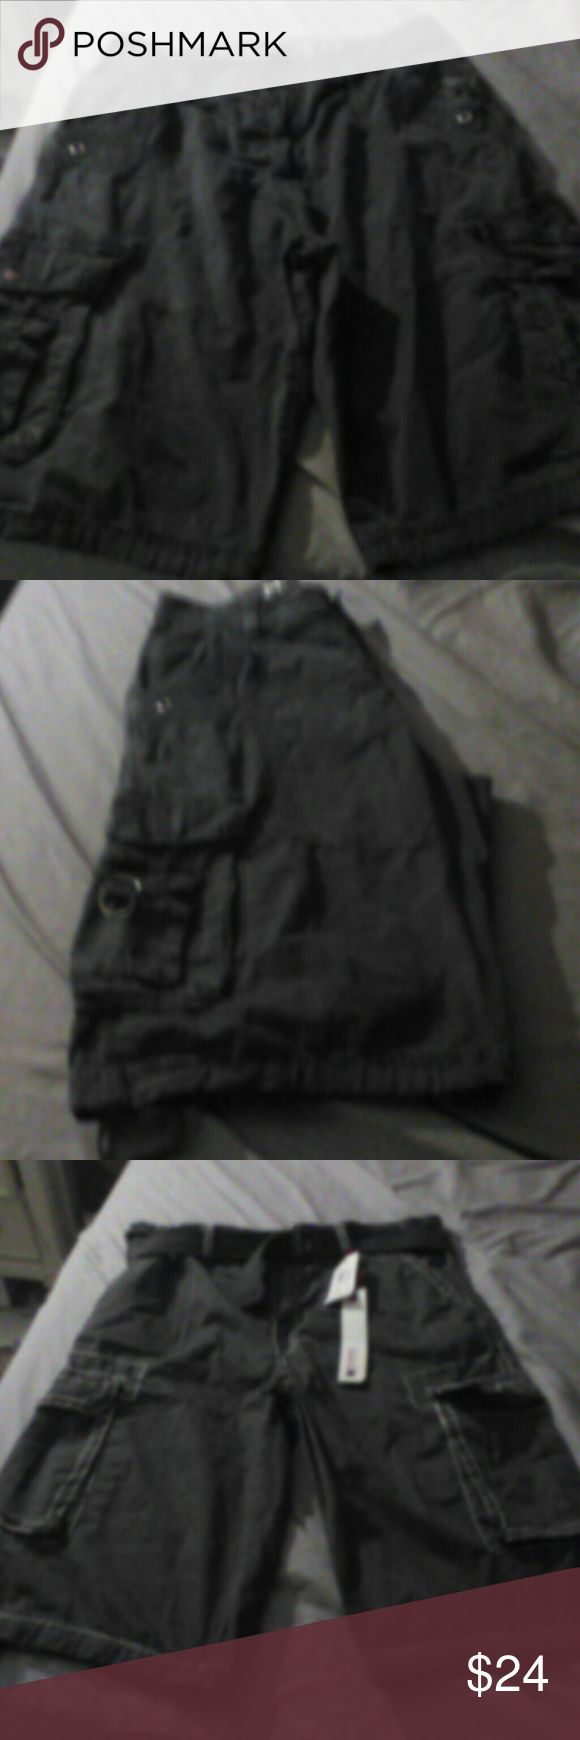 2 Guy shorts They r in great conditions one is with tags the other is used once both size 34 Shorts Cargo